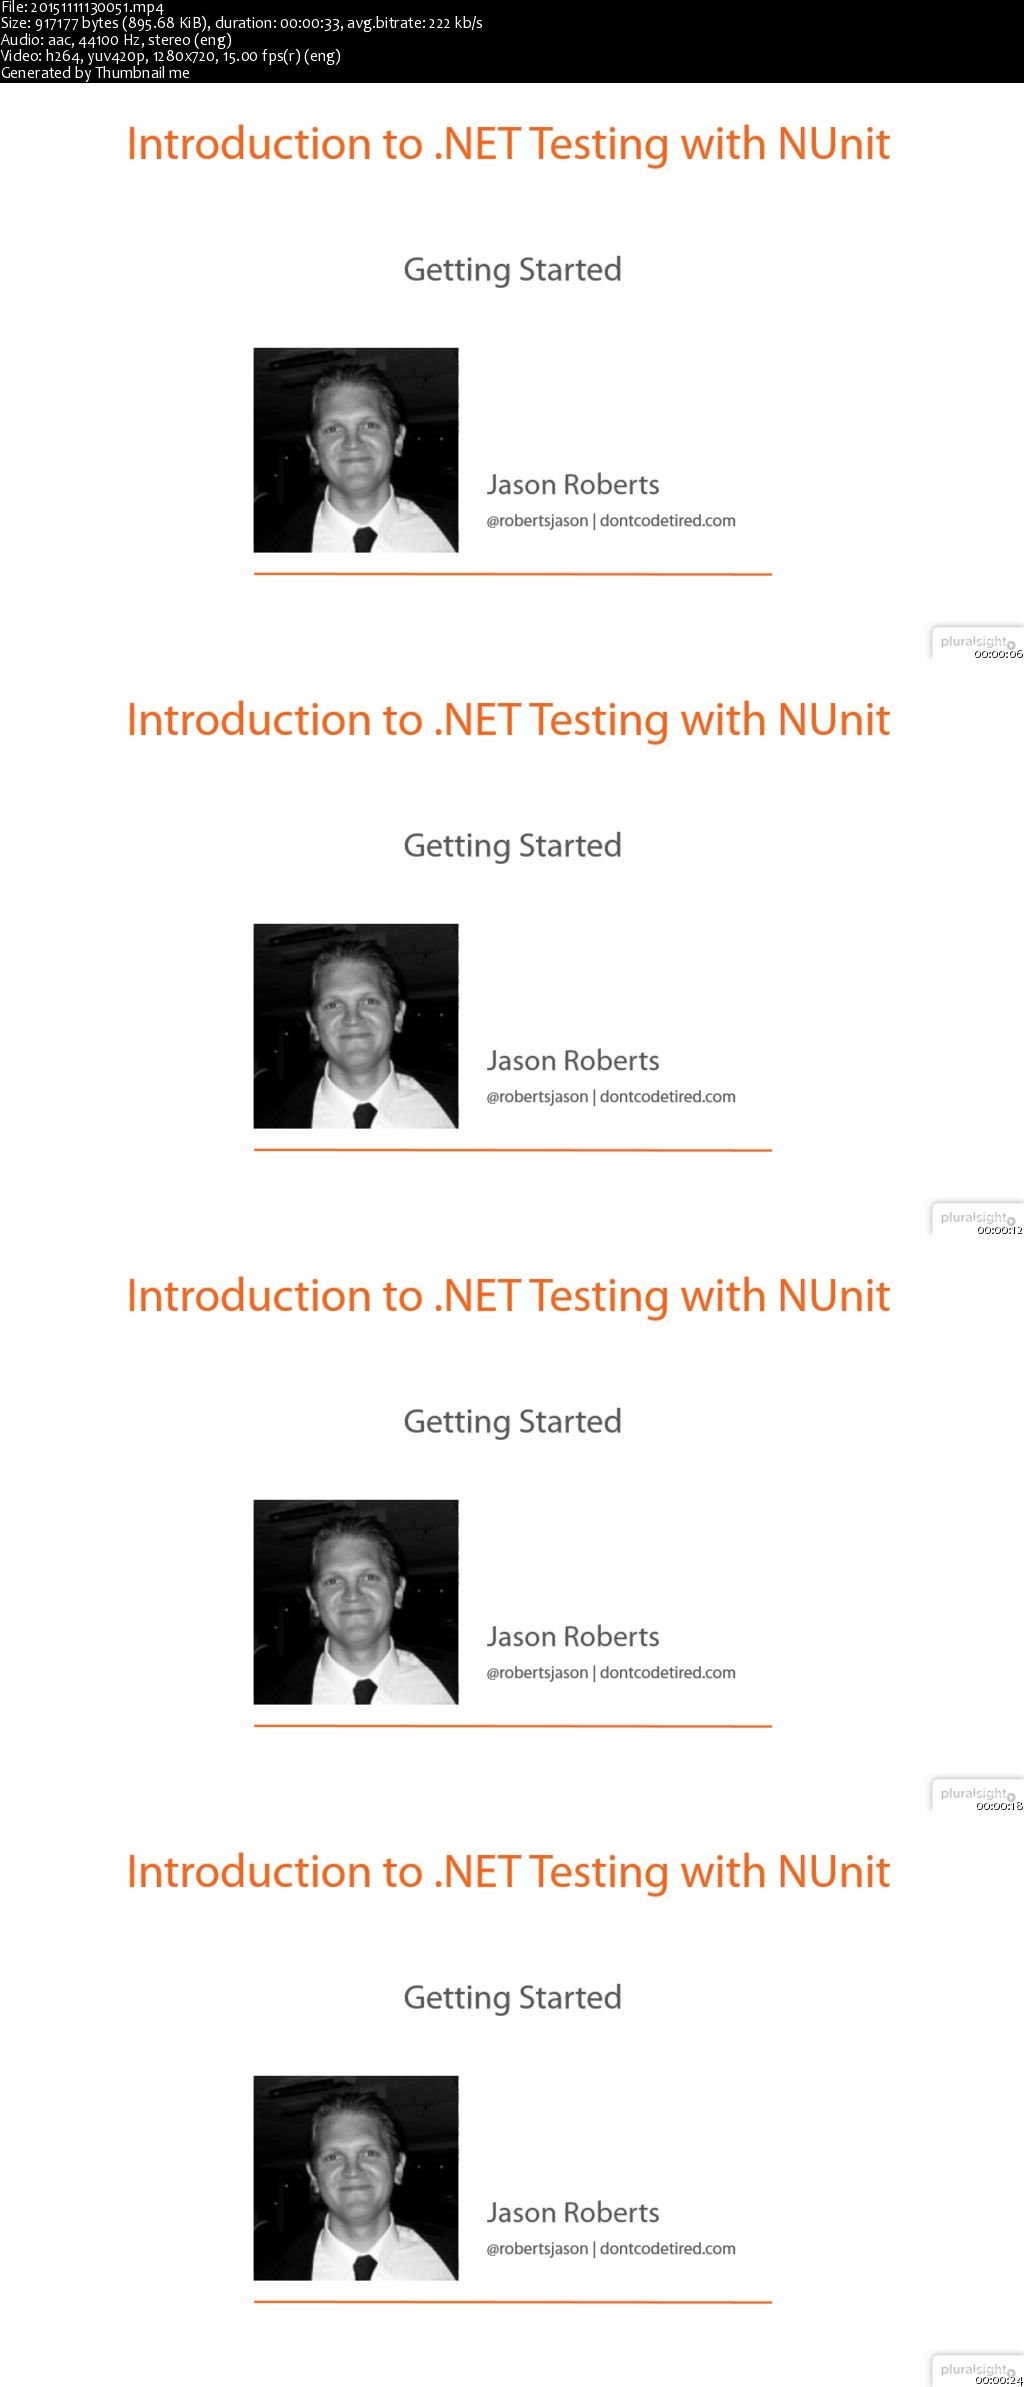 Introduction to .NET Testing with NUnit [repost]